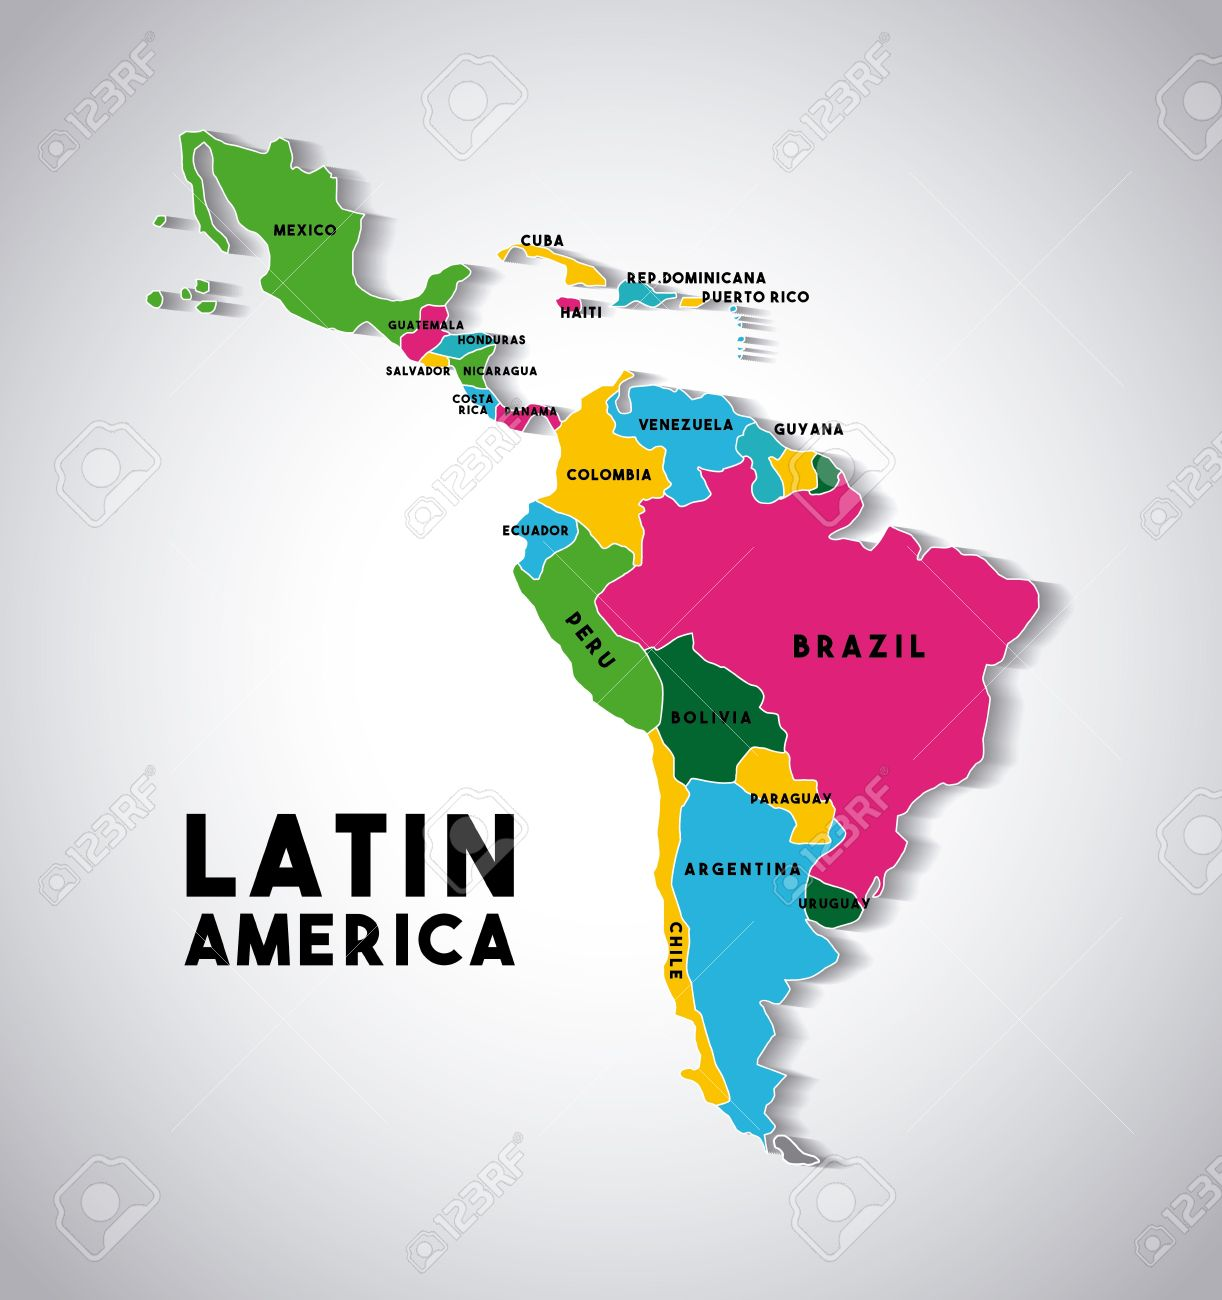 Map of Latin America with the countries demarcated in different colors. colorful design. vector illustration - 67878330